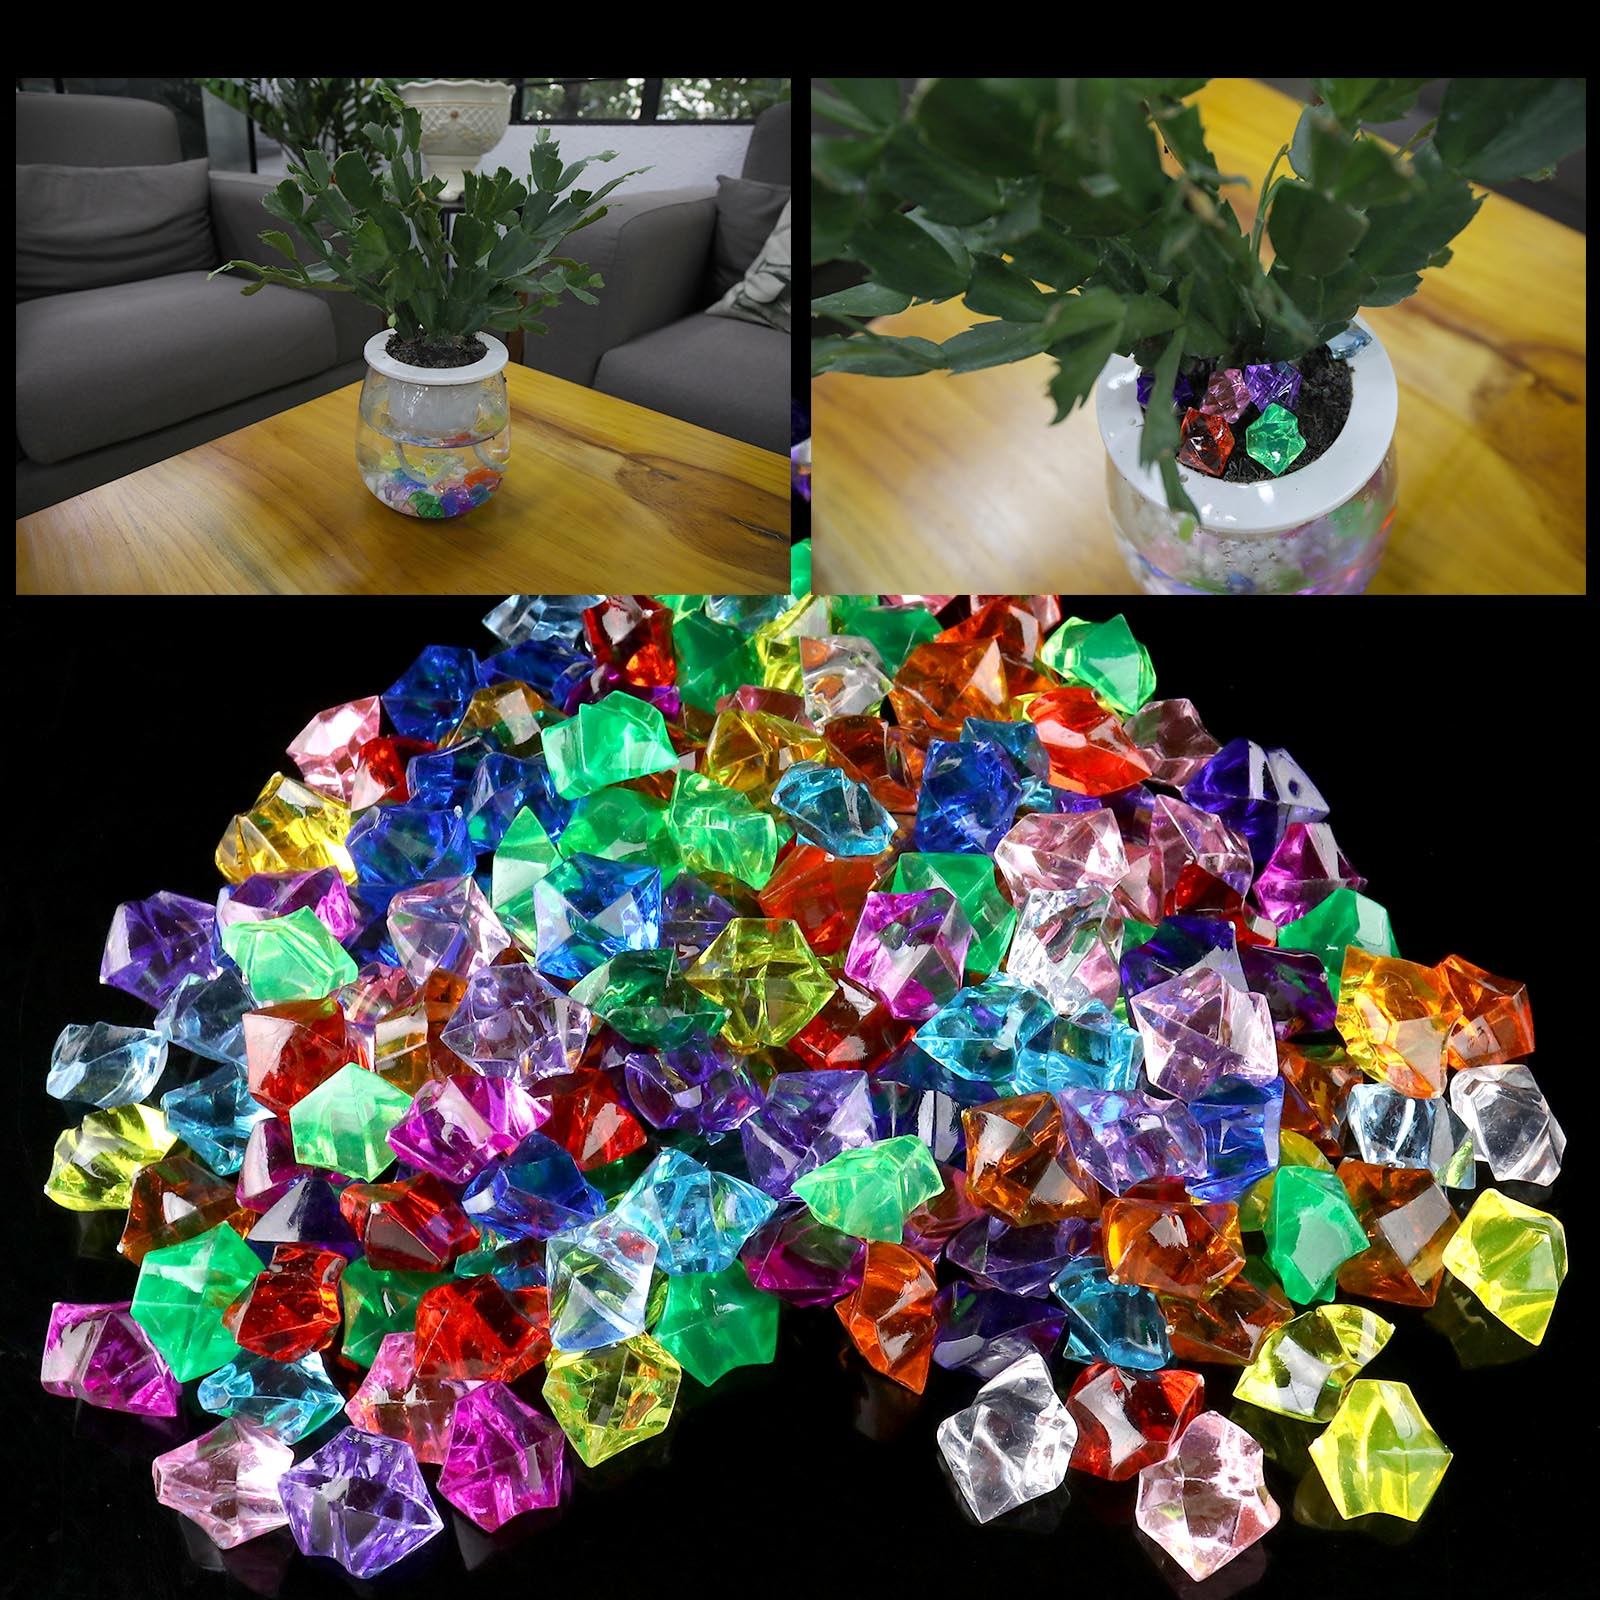 200 pcs Beads Vase Filler Crystal Gems Pirate Party Craft Props Home Display